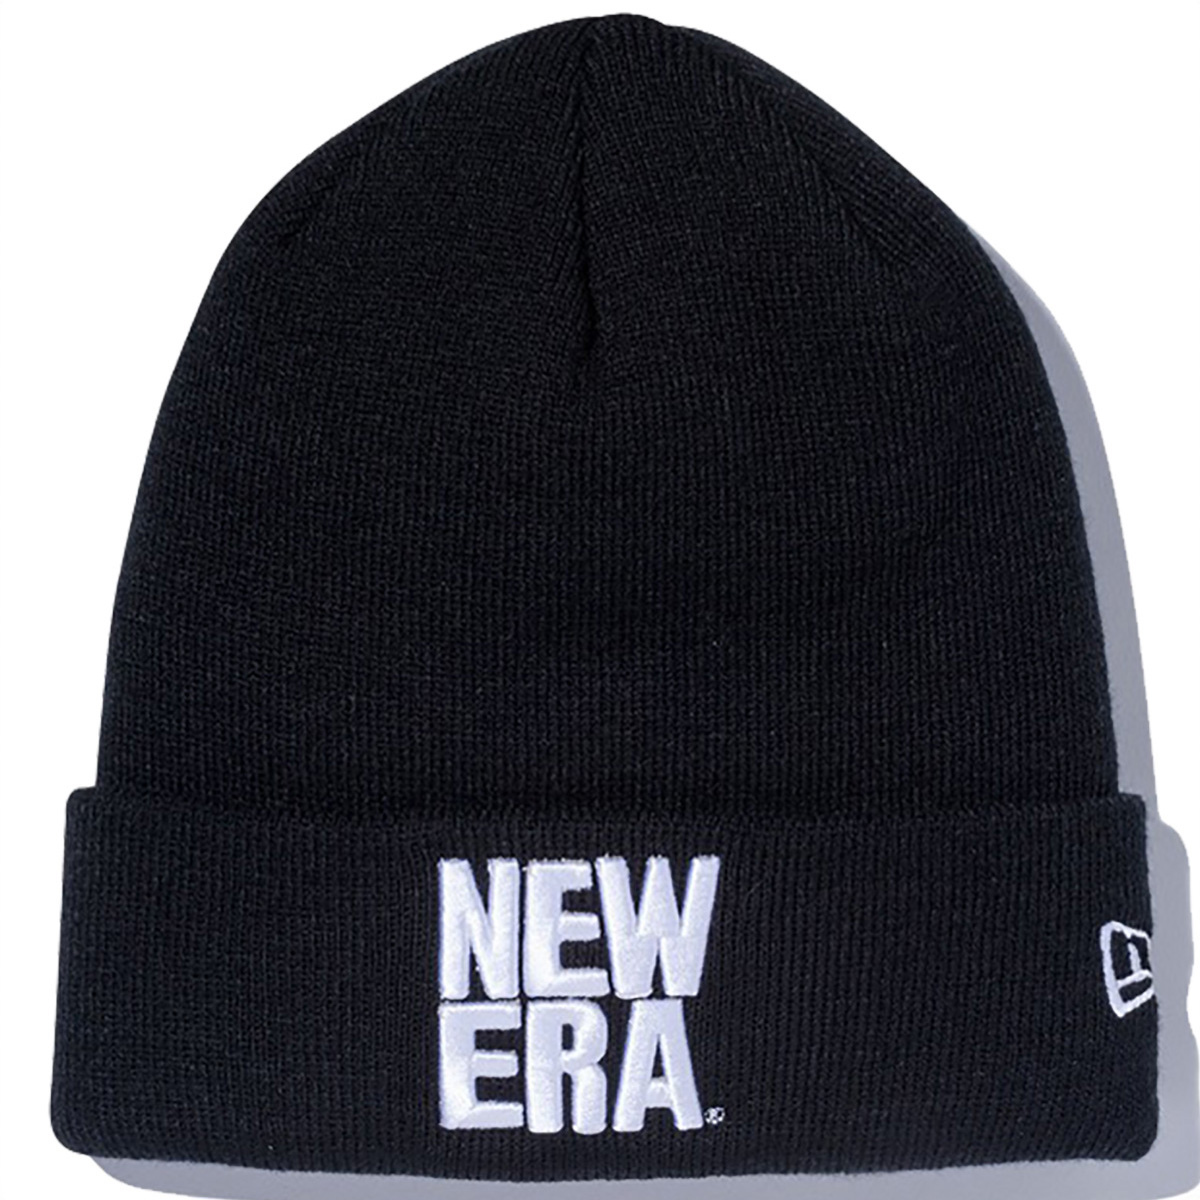 CUFF KNIT SQUARE NEW ERA LOGO ニットキャップ